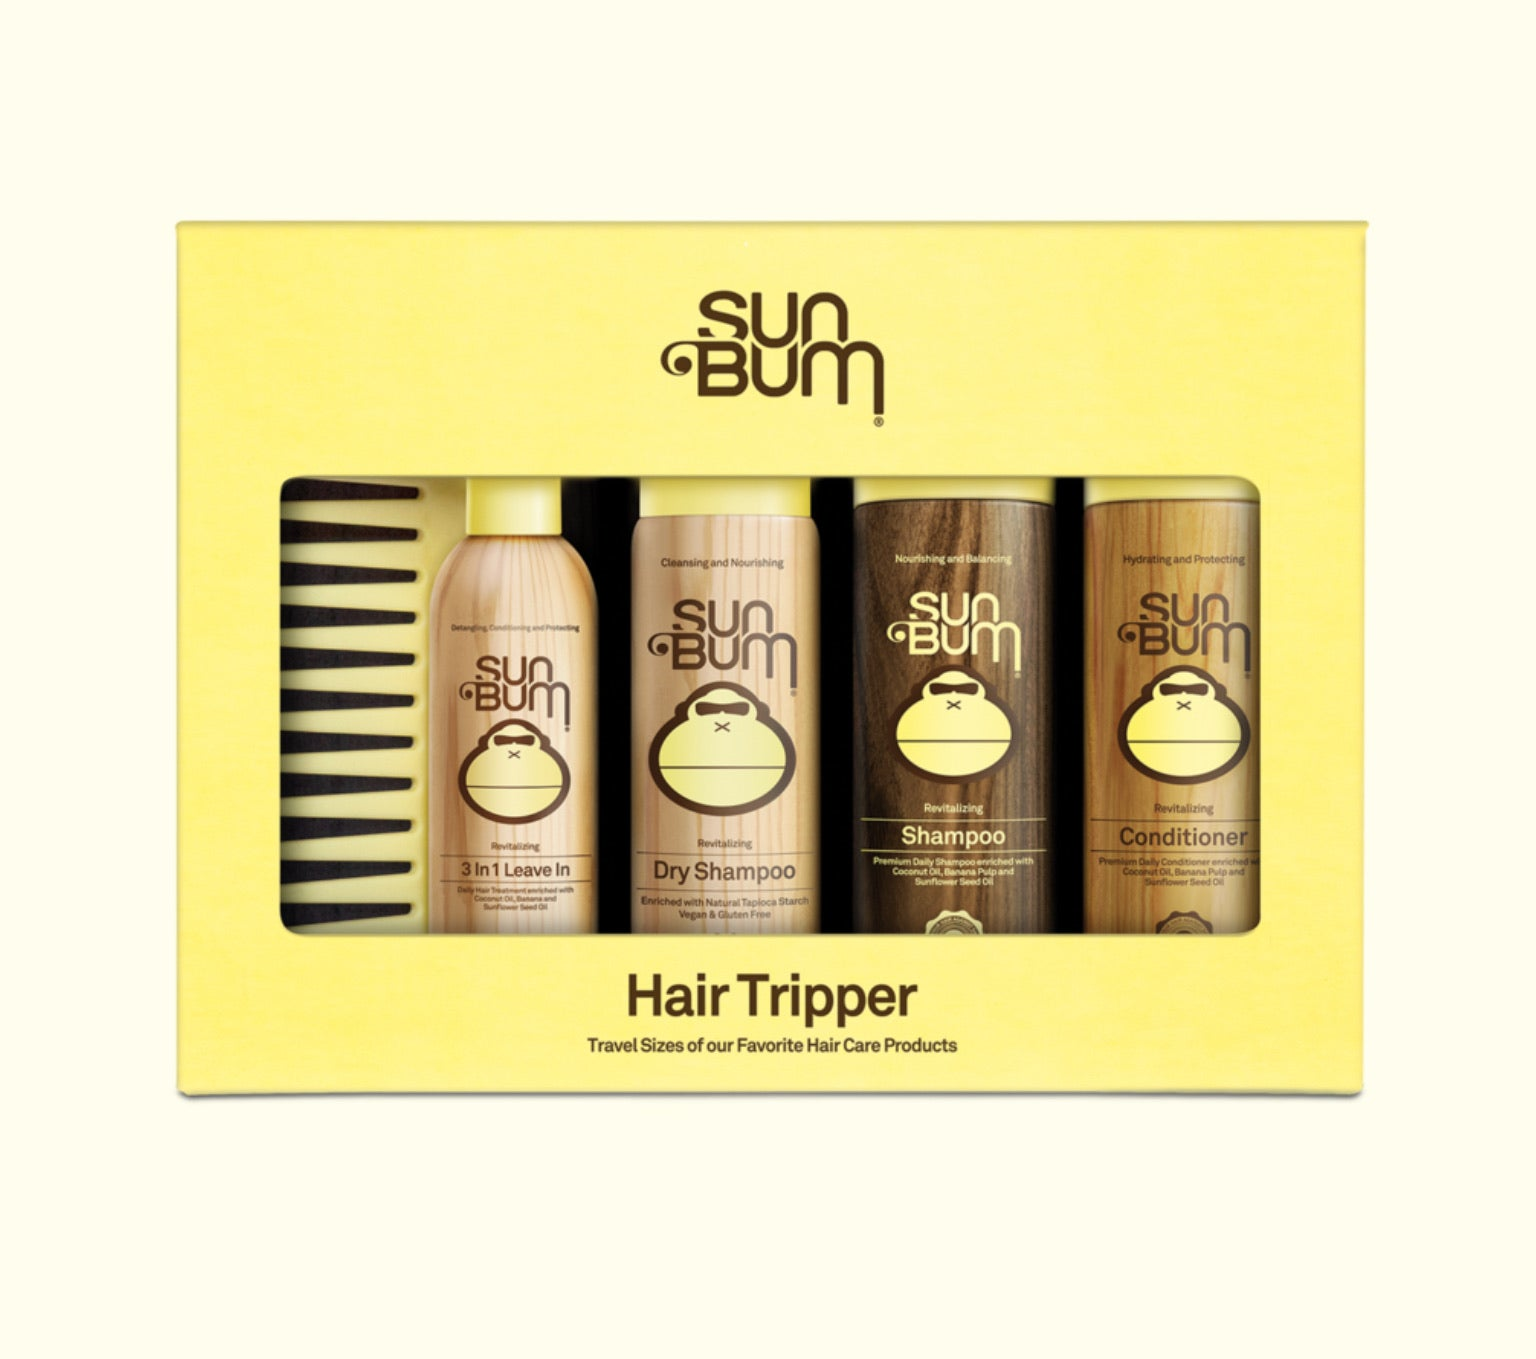 Sun Bum Hair Tripper Kit